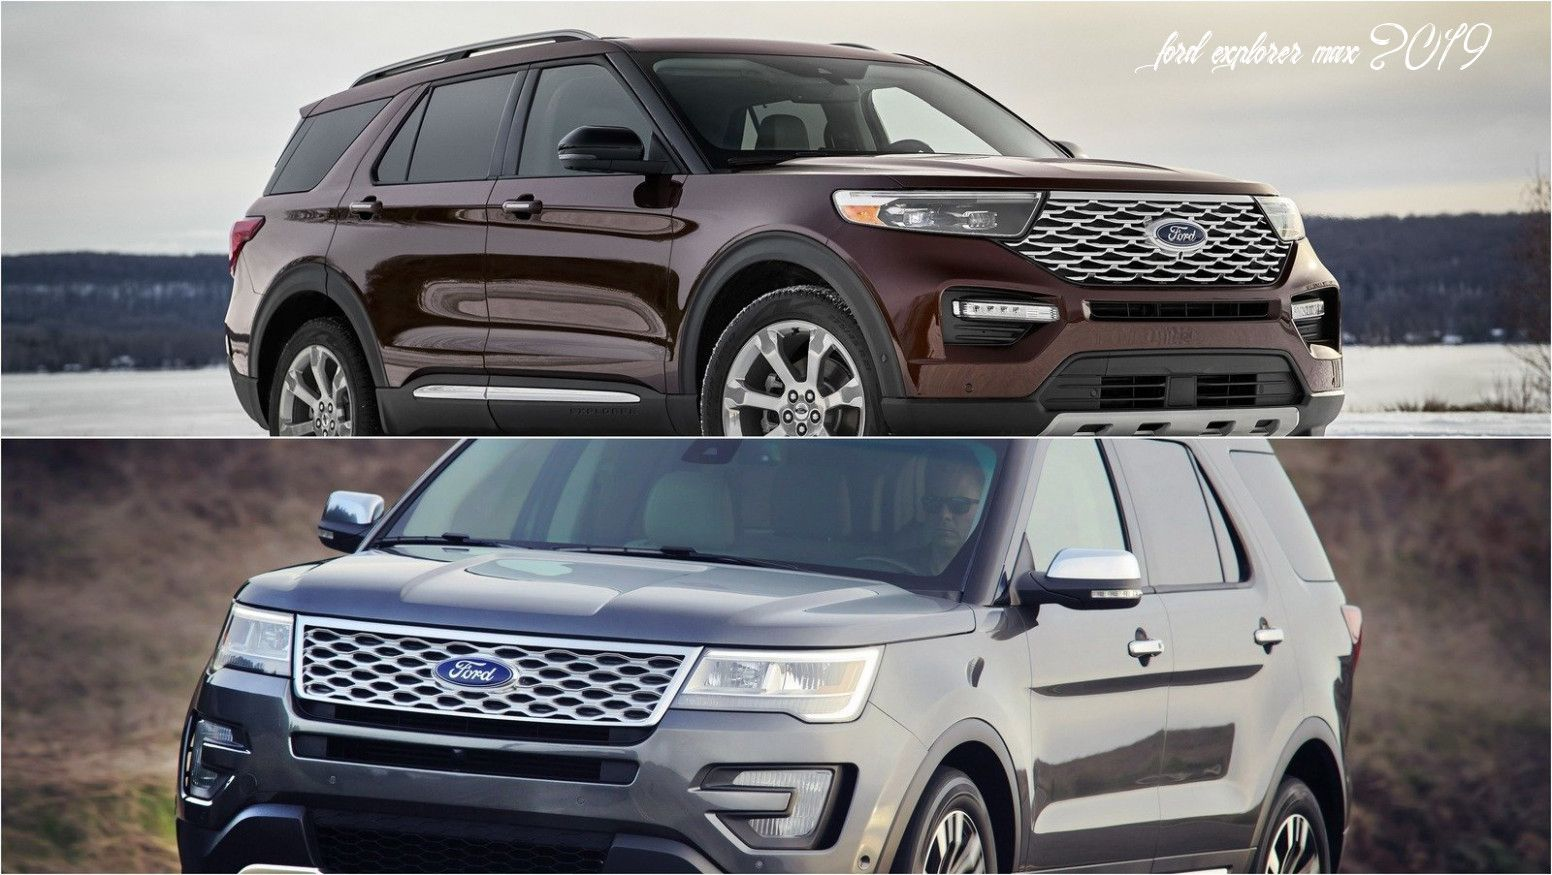 Ford Explorer Max 2019 Specs in 2020 Ford flex, Ford suv